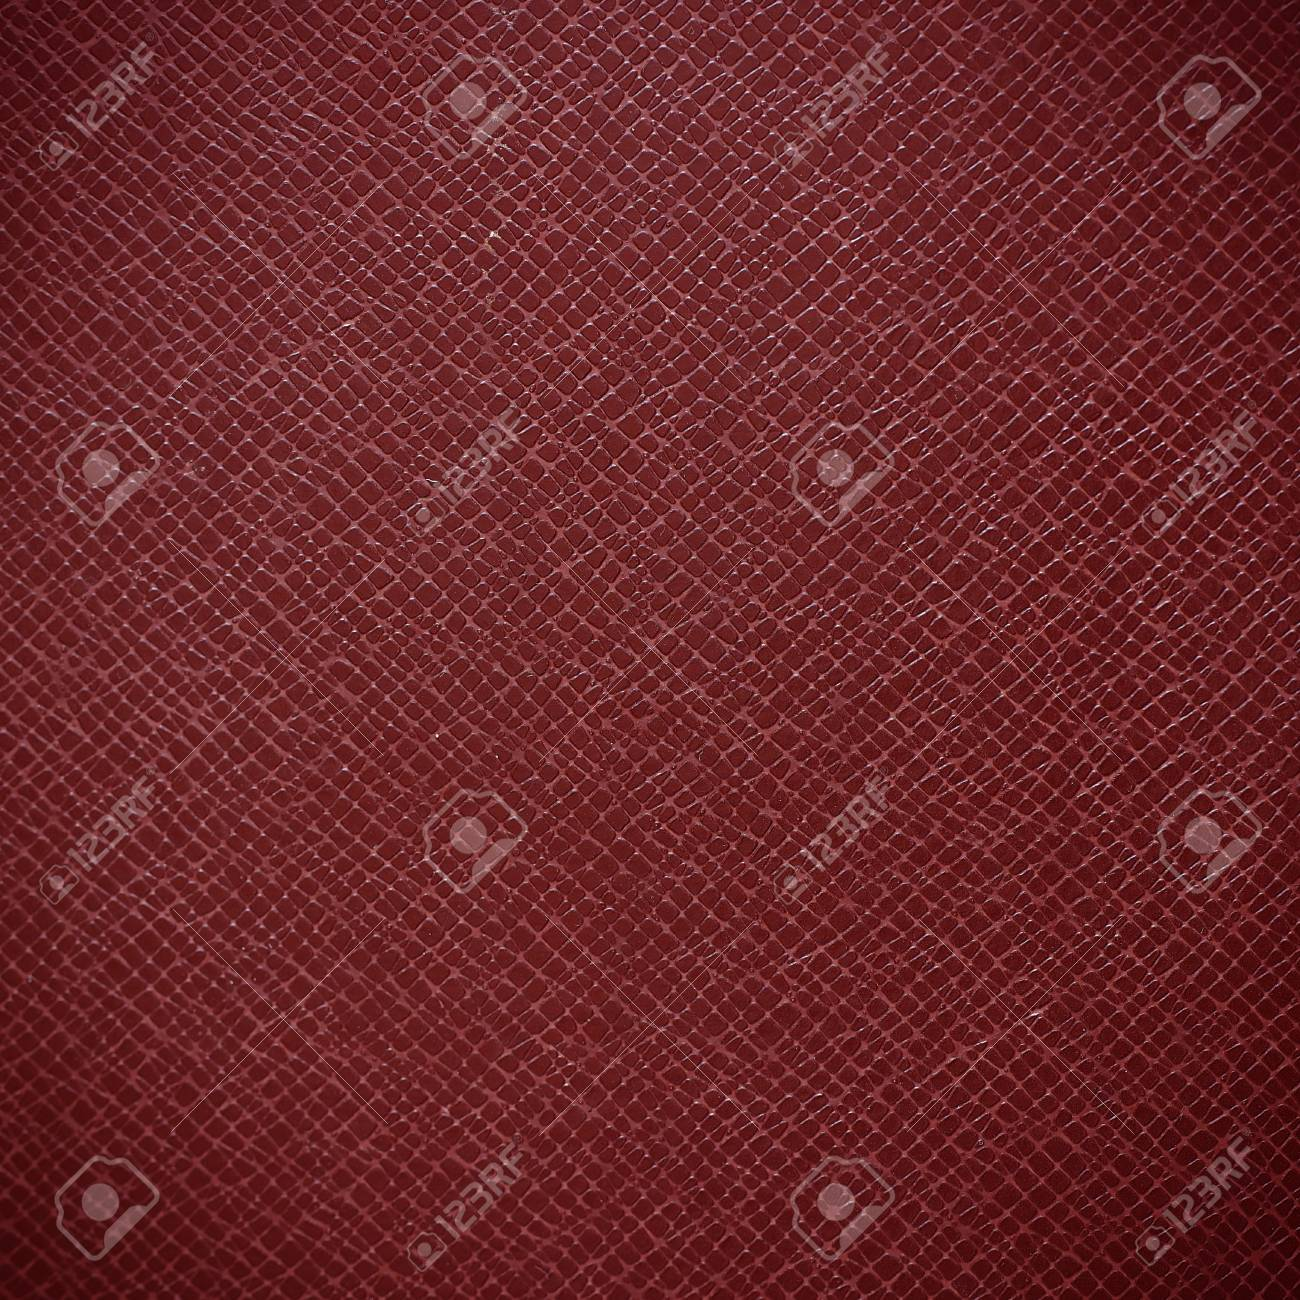 Red leather texture closeup Standard-Bild - 42724577